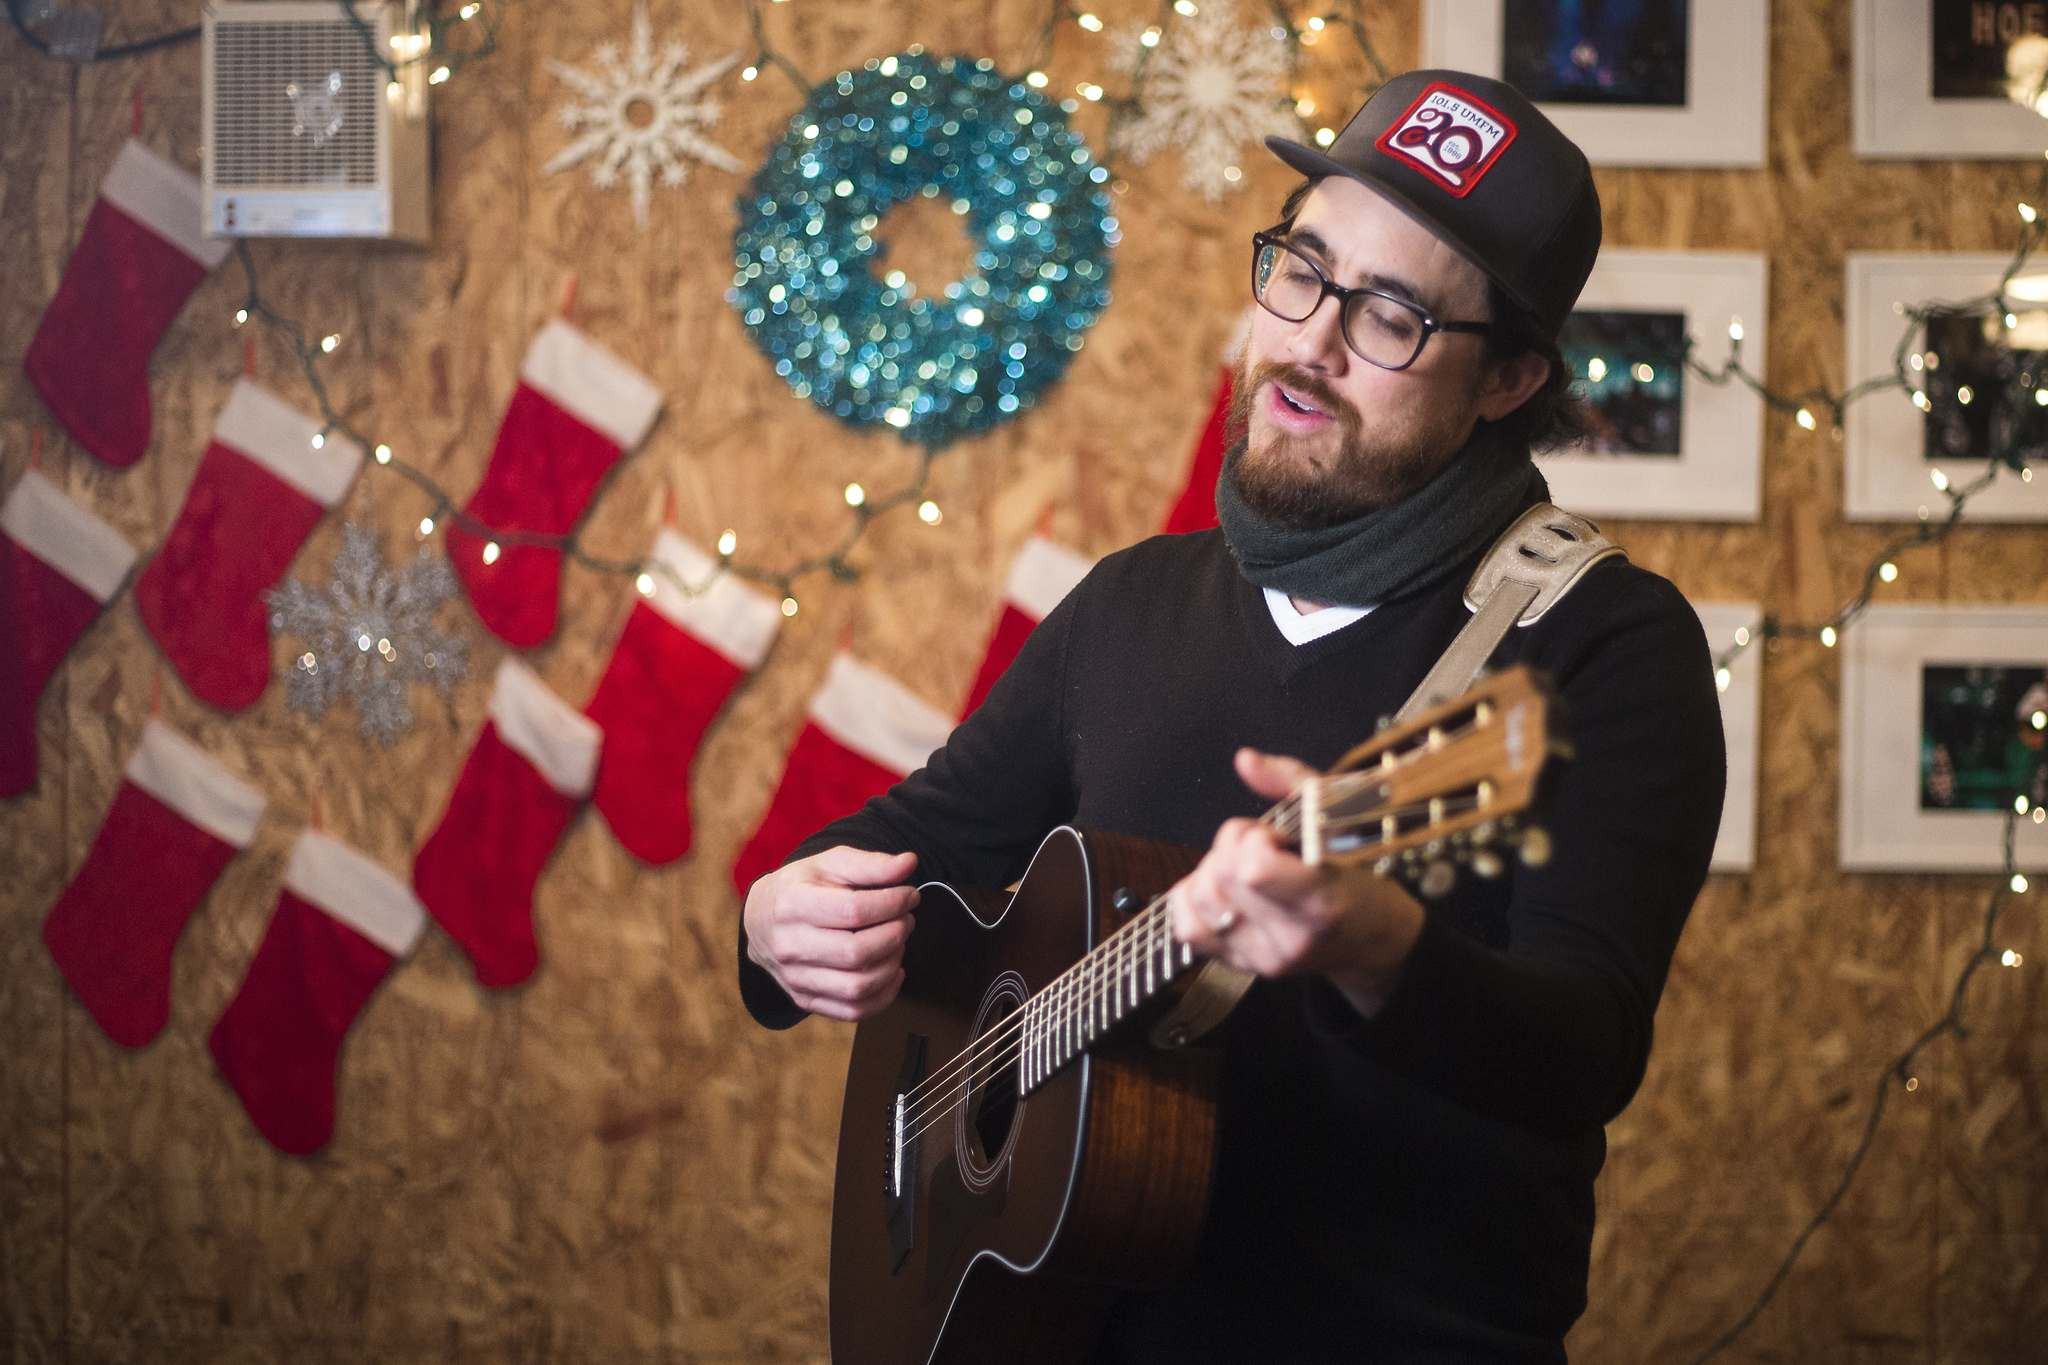 The JP Hoe Hoe Hoe holiday show has grown exponentially over the years. (Mikaela MacKenzie / Winnipeg Free Press files)